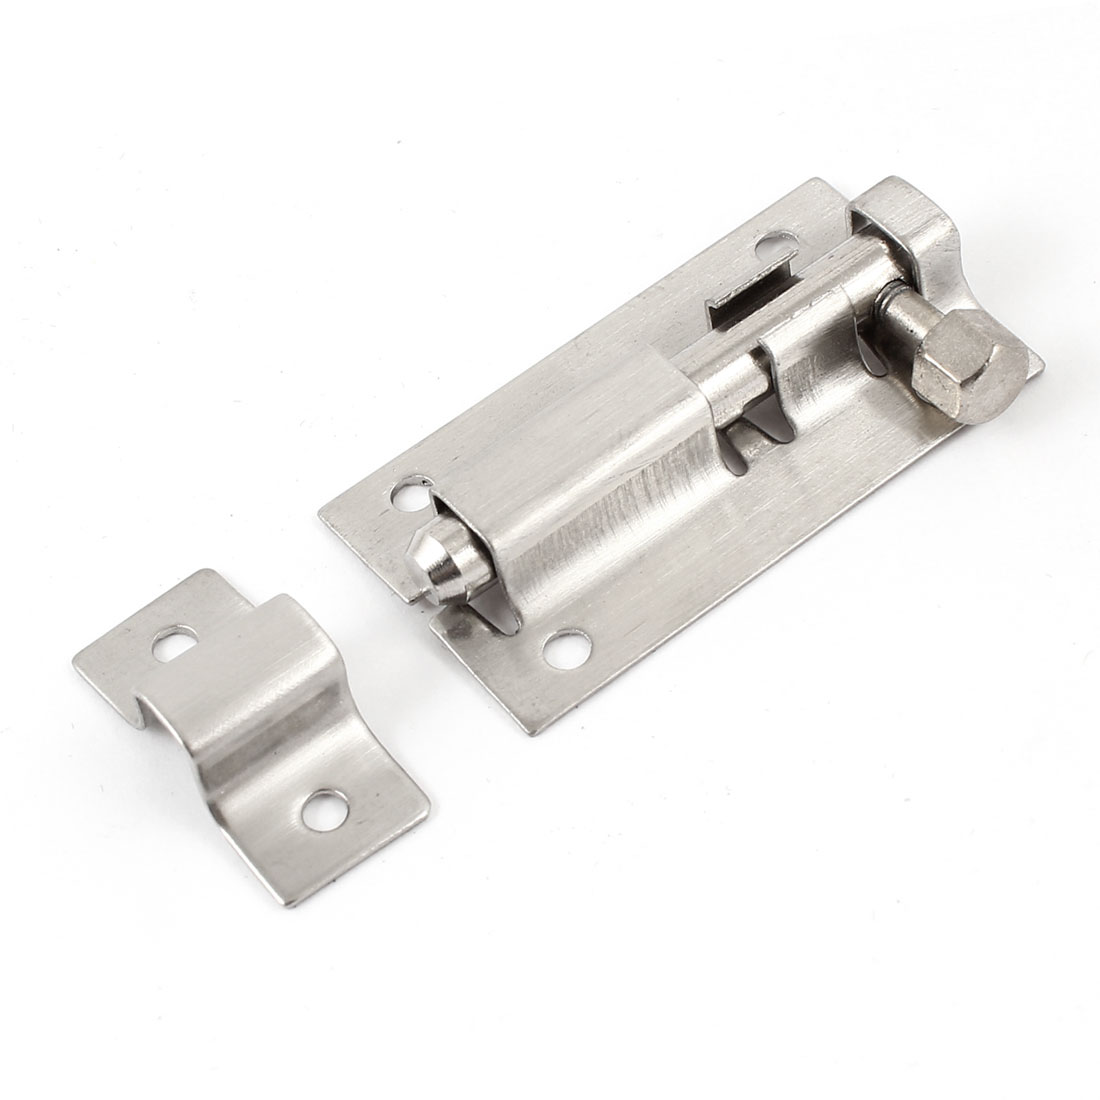 Silver Tone Stainless Steel Security Door Windows Barrel Bolt Latch 2""